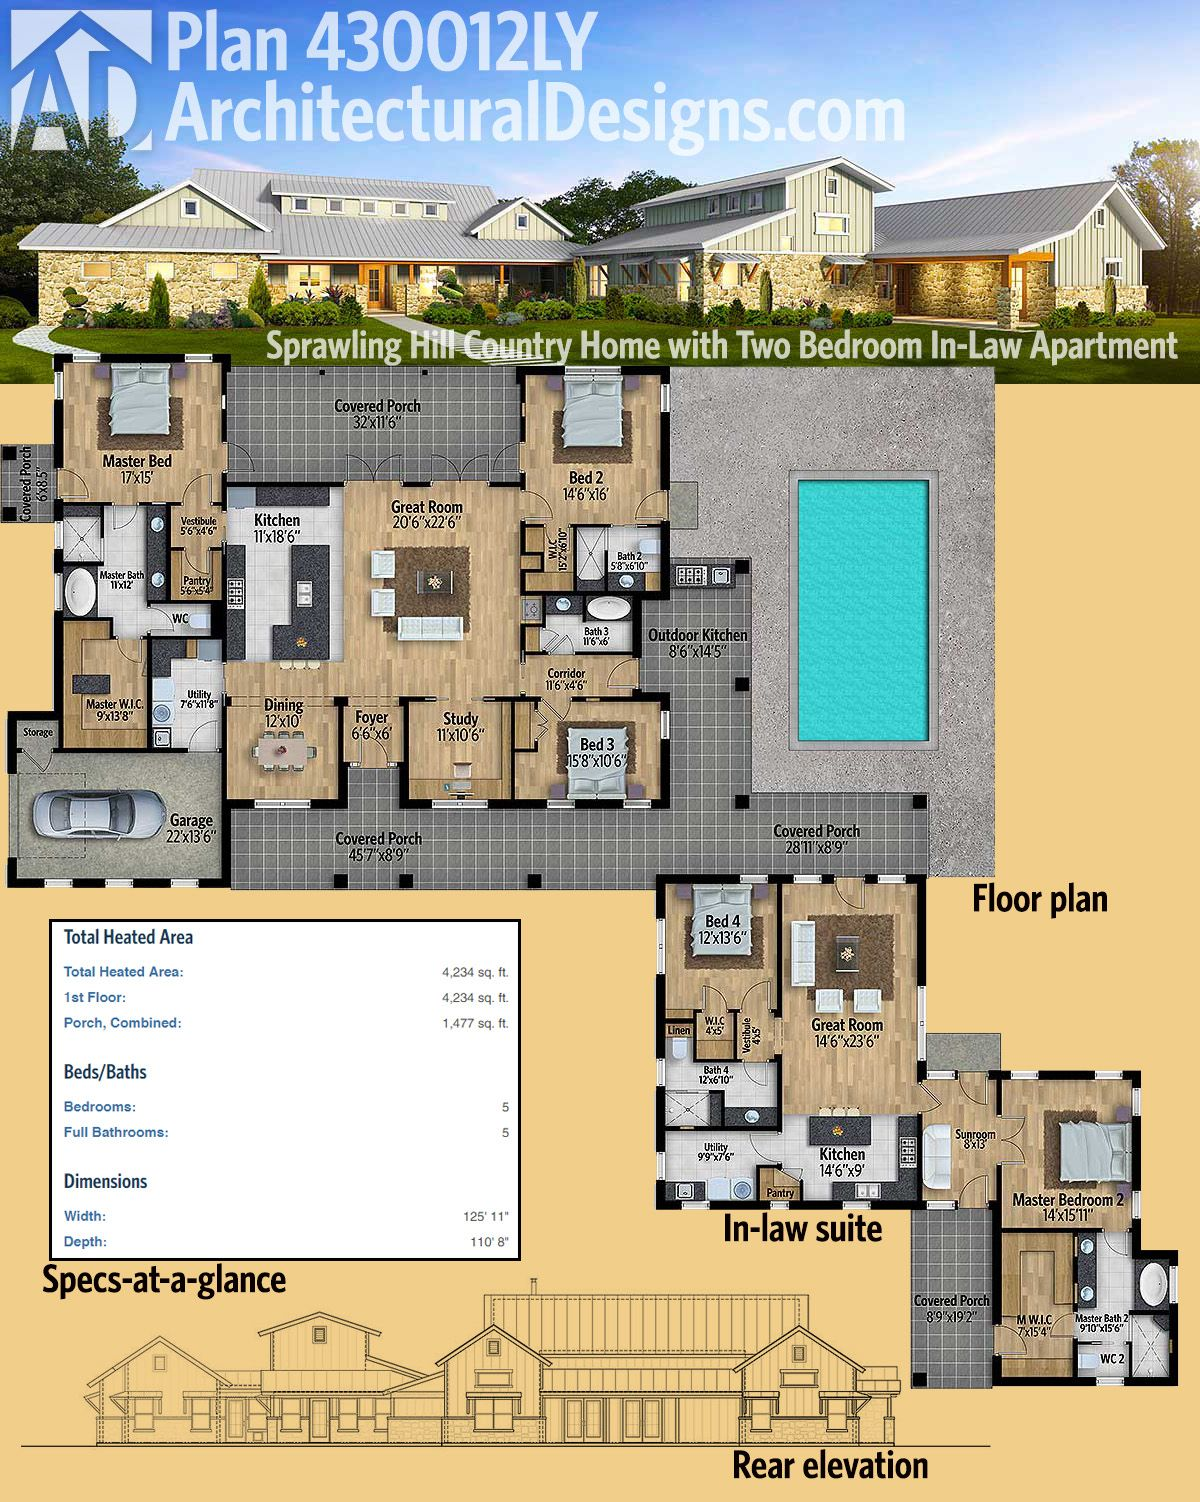 Plan 430012ly Sprawling Multi Generational Hill Country Home With Two Bedroom Multigenerational House Plans Hill Country Homes Country House Plan